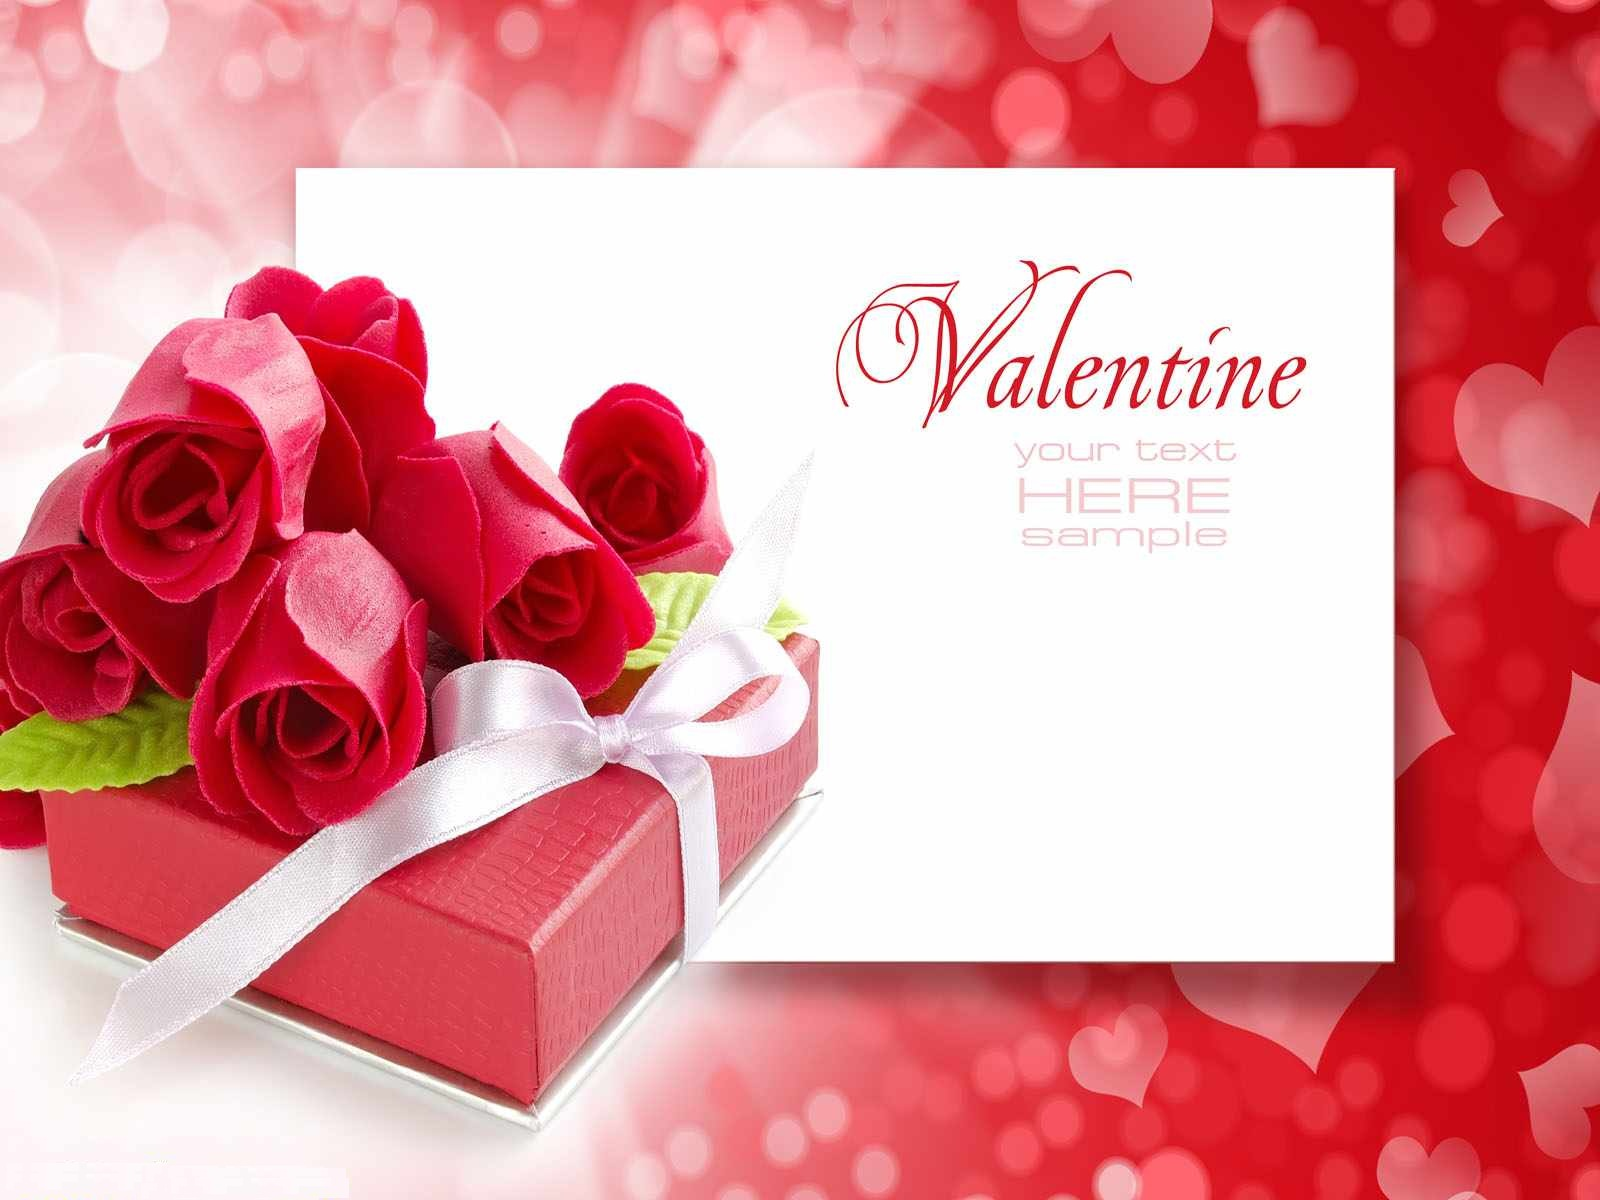 Happy valentines day 2013 greeting cards free download free happy valentines day 2013 greeting cards m4hsunfo